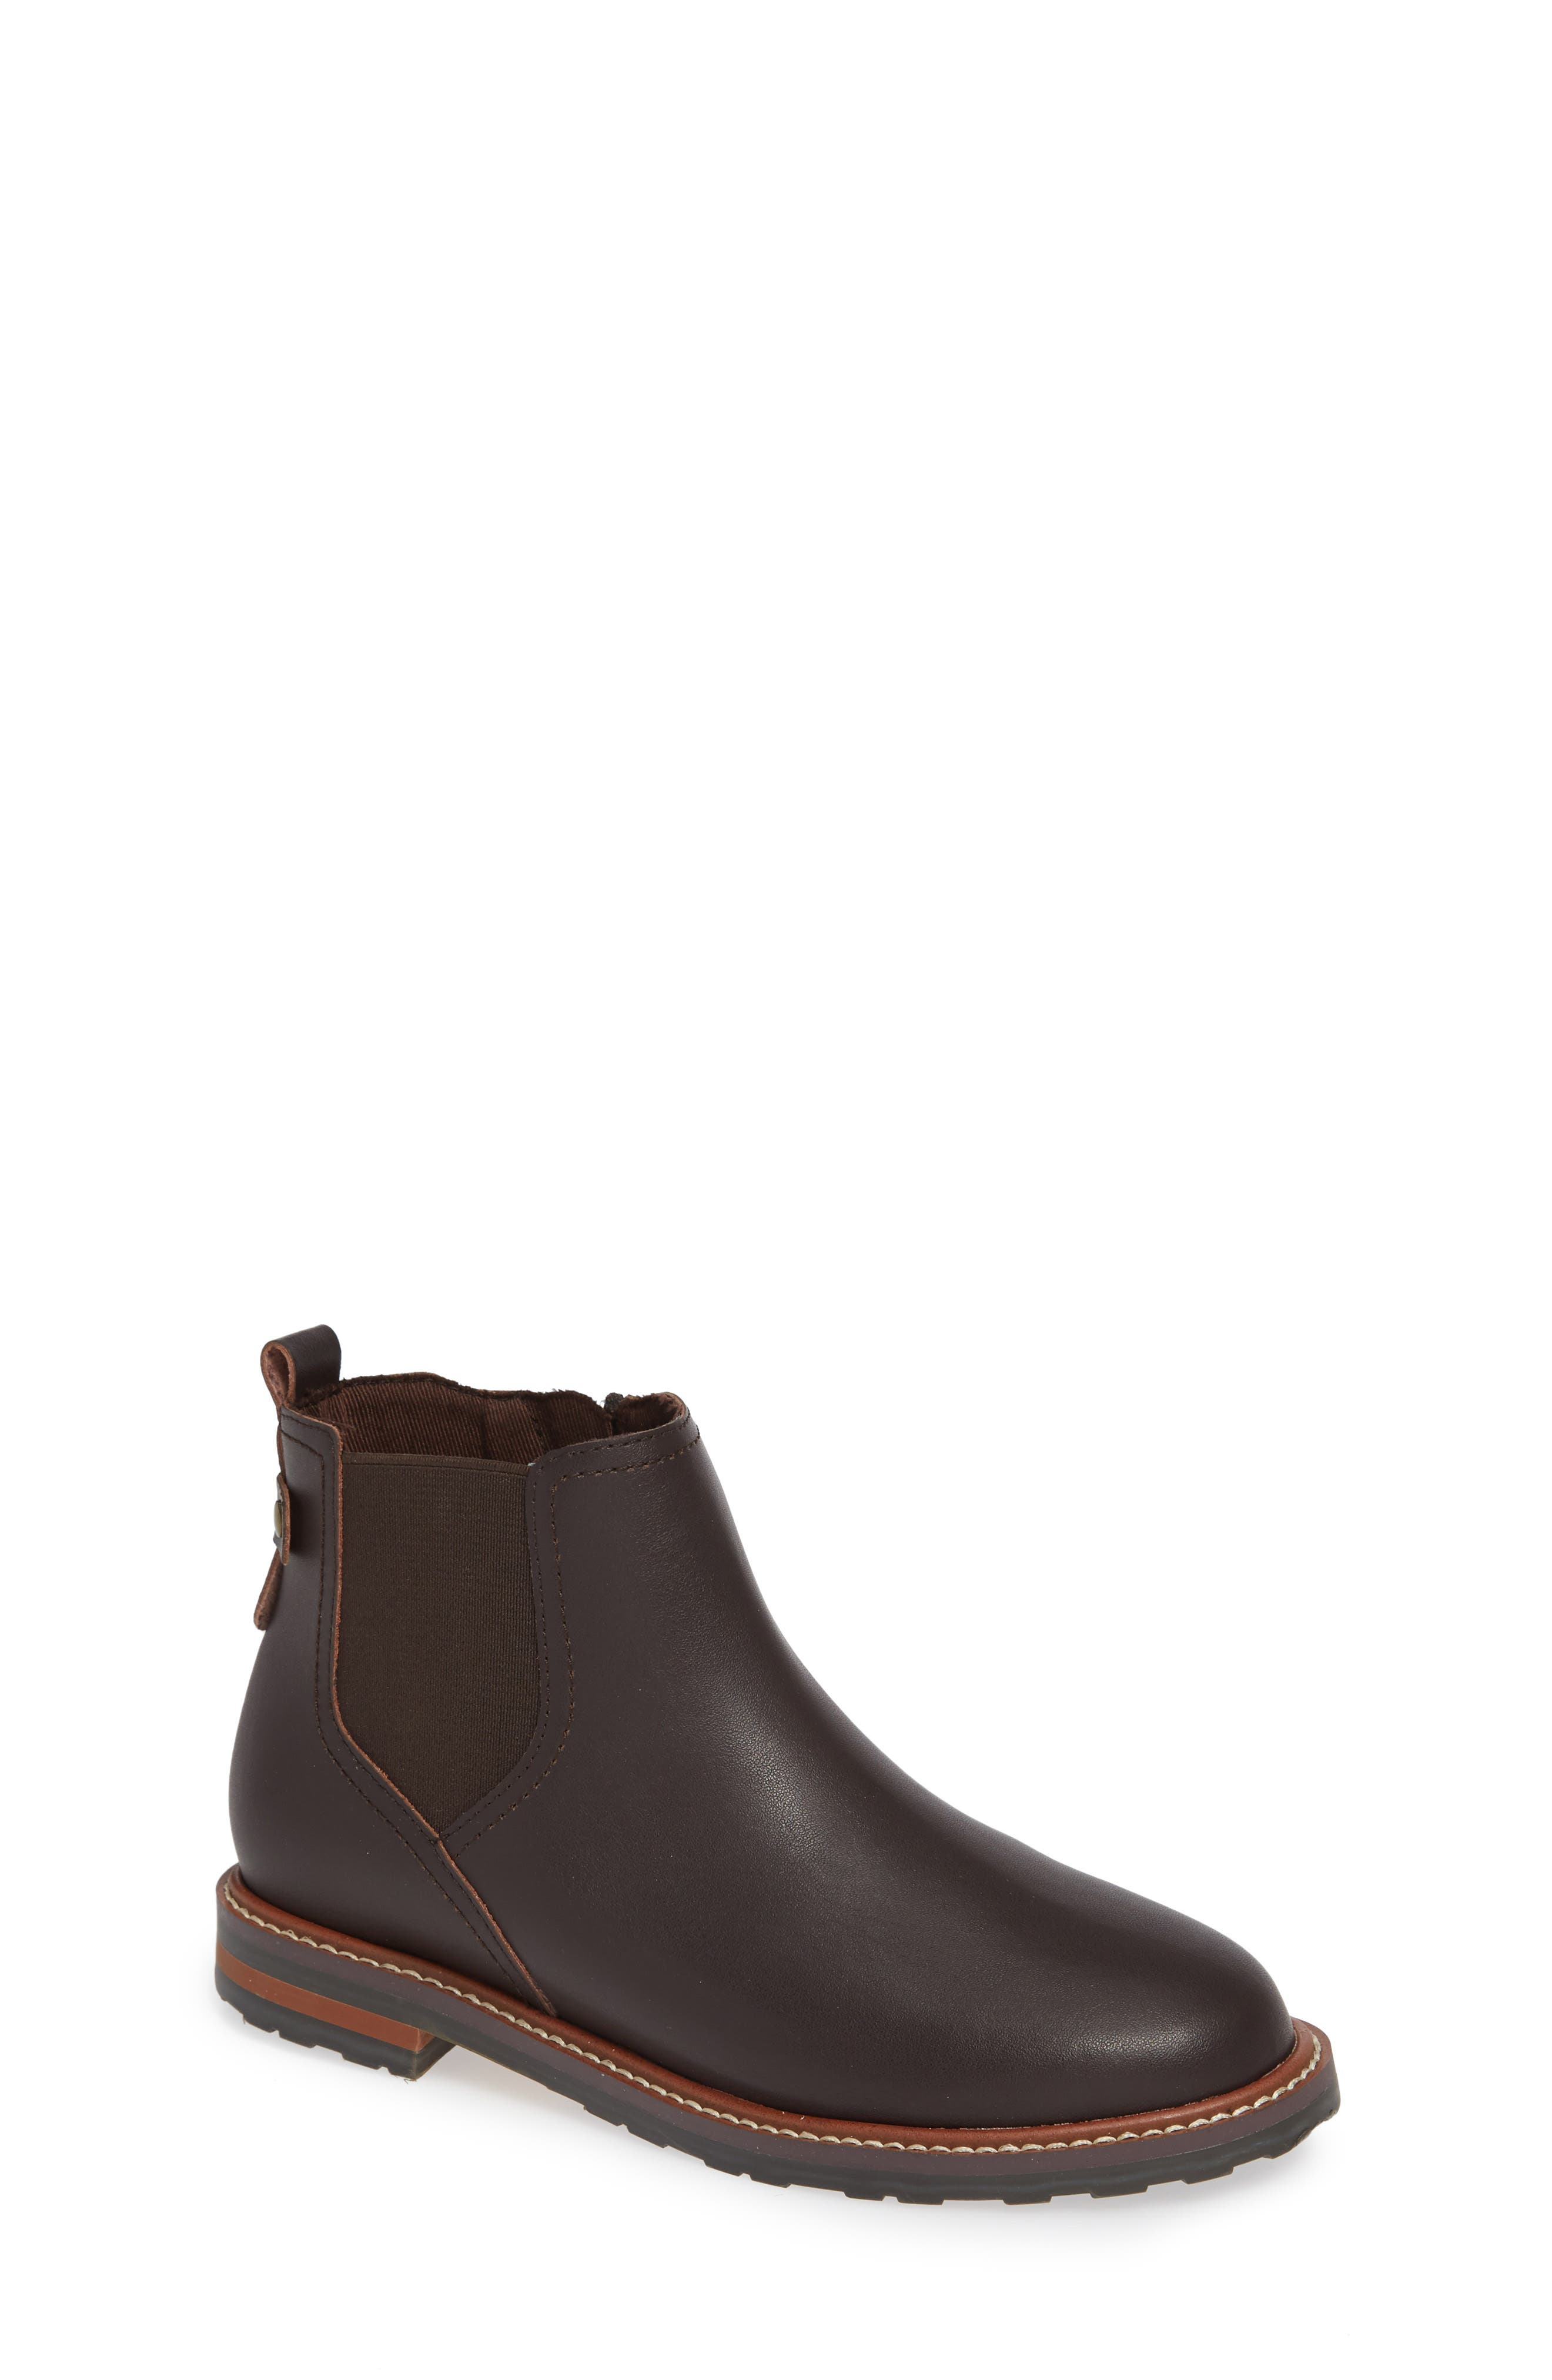 Chelsea Boot,                             Main thumbnail 1, color,                             CHOCOLATE OILED LEATHER